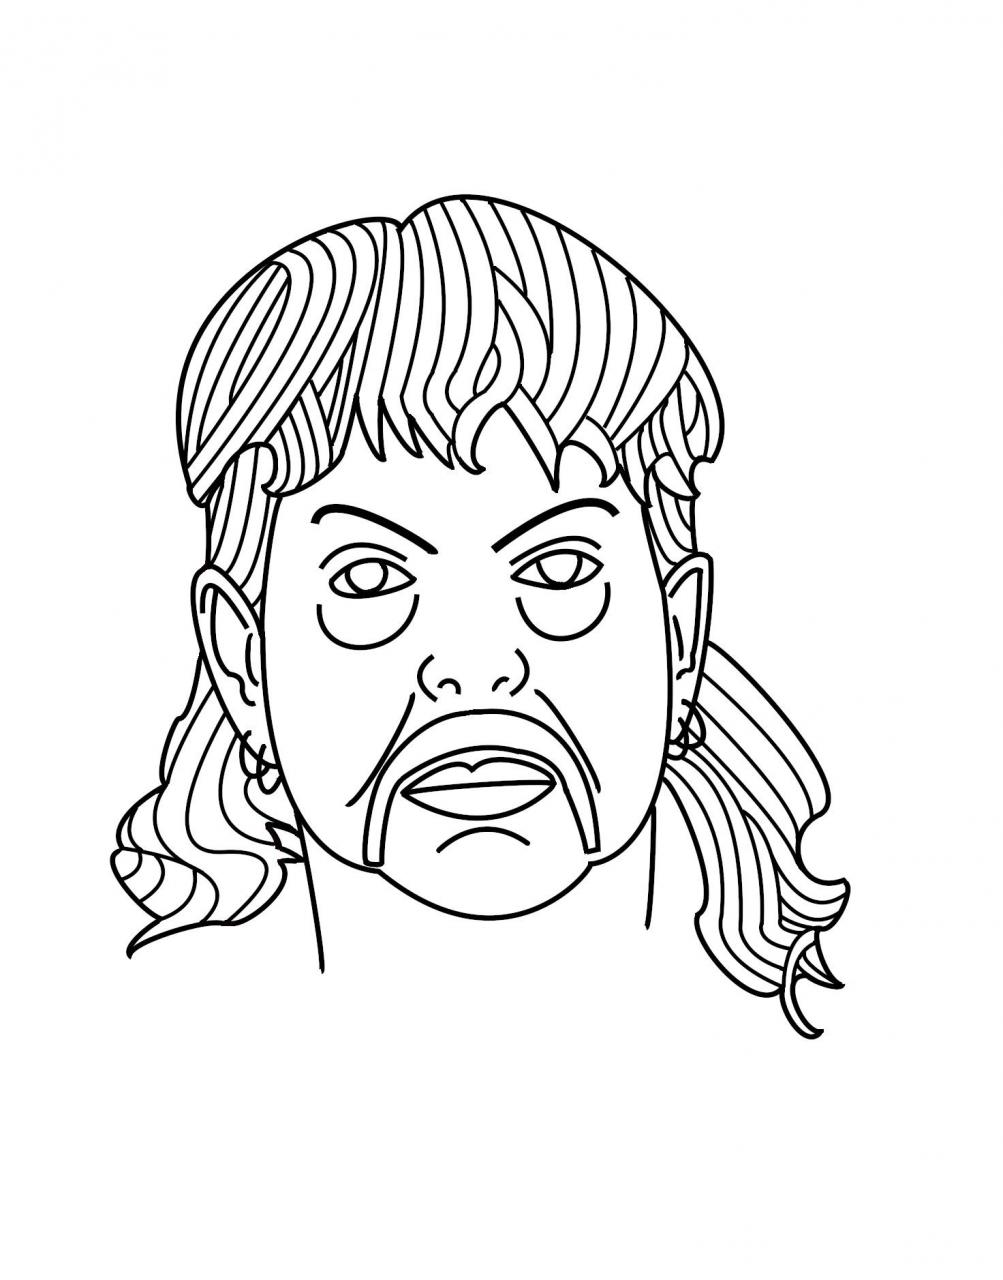 Looking to get into tattooing and I've been playing about in photoshop to make this lil Joe Exotic, what do you guys think? I'm not much of a realism guy.